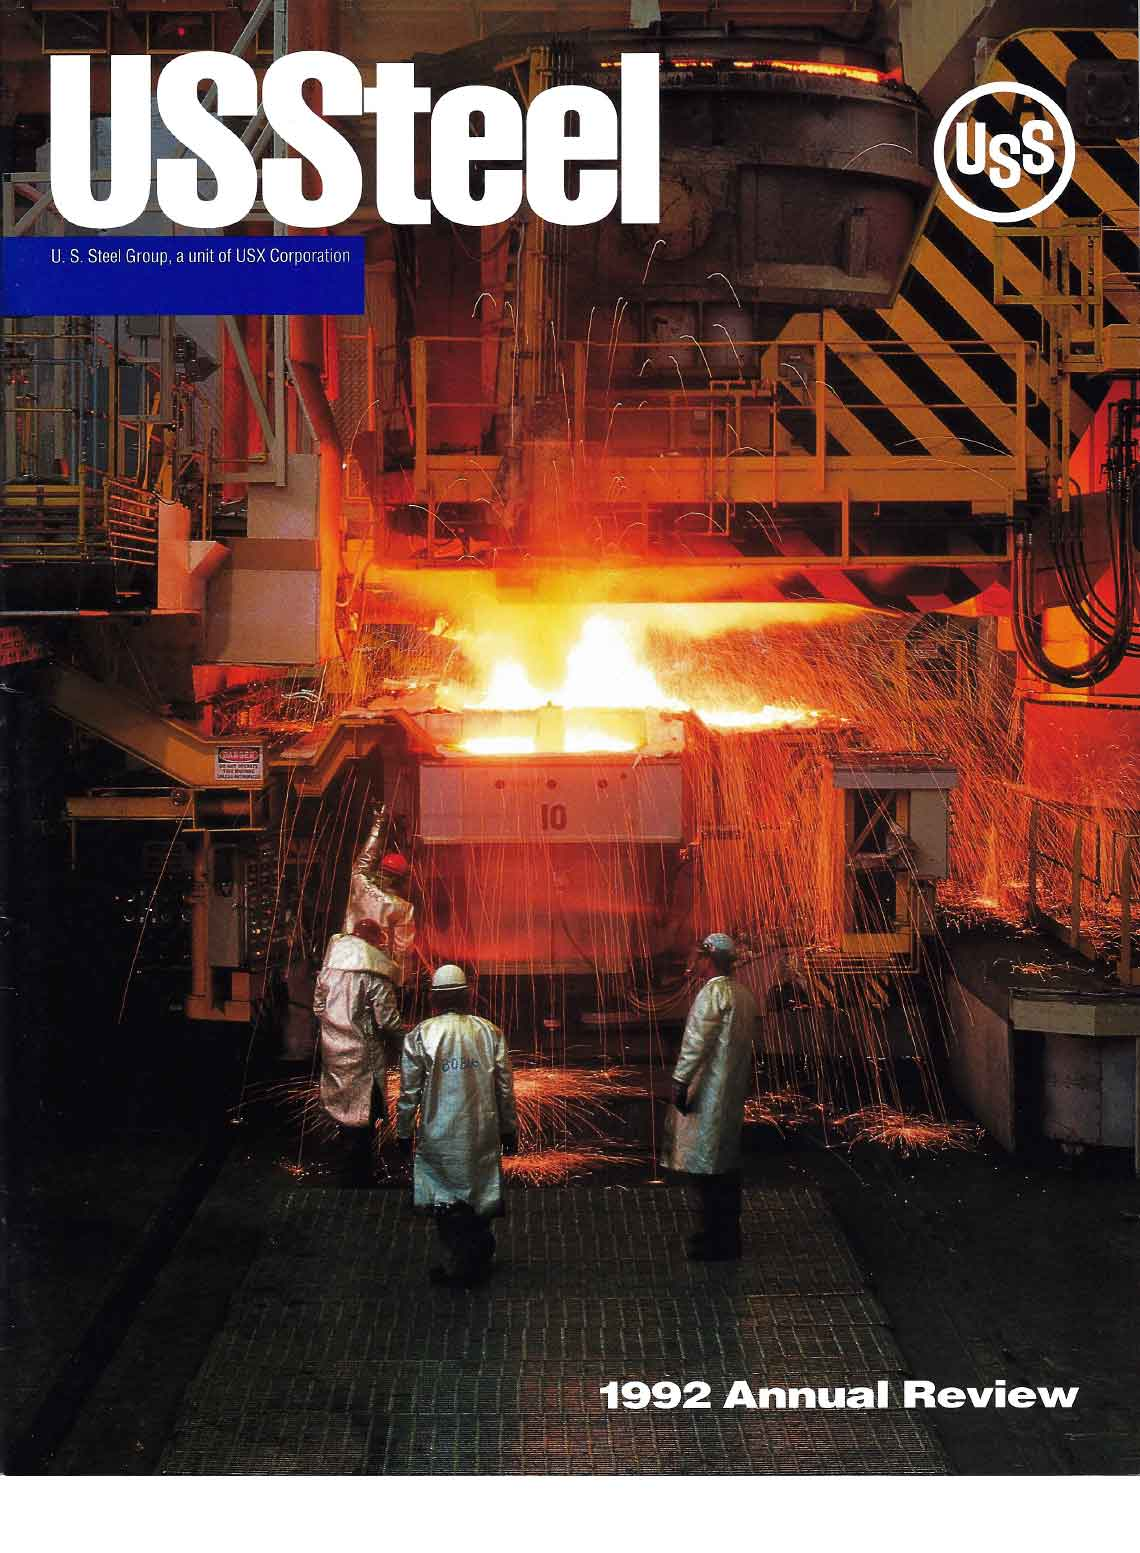 U.S. Steel 1992 Annual Review